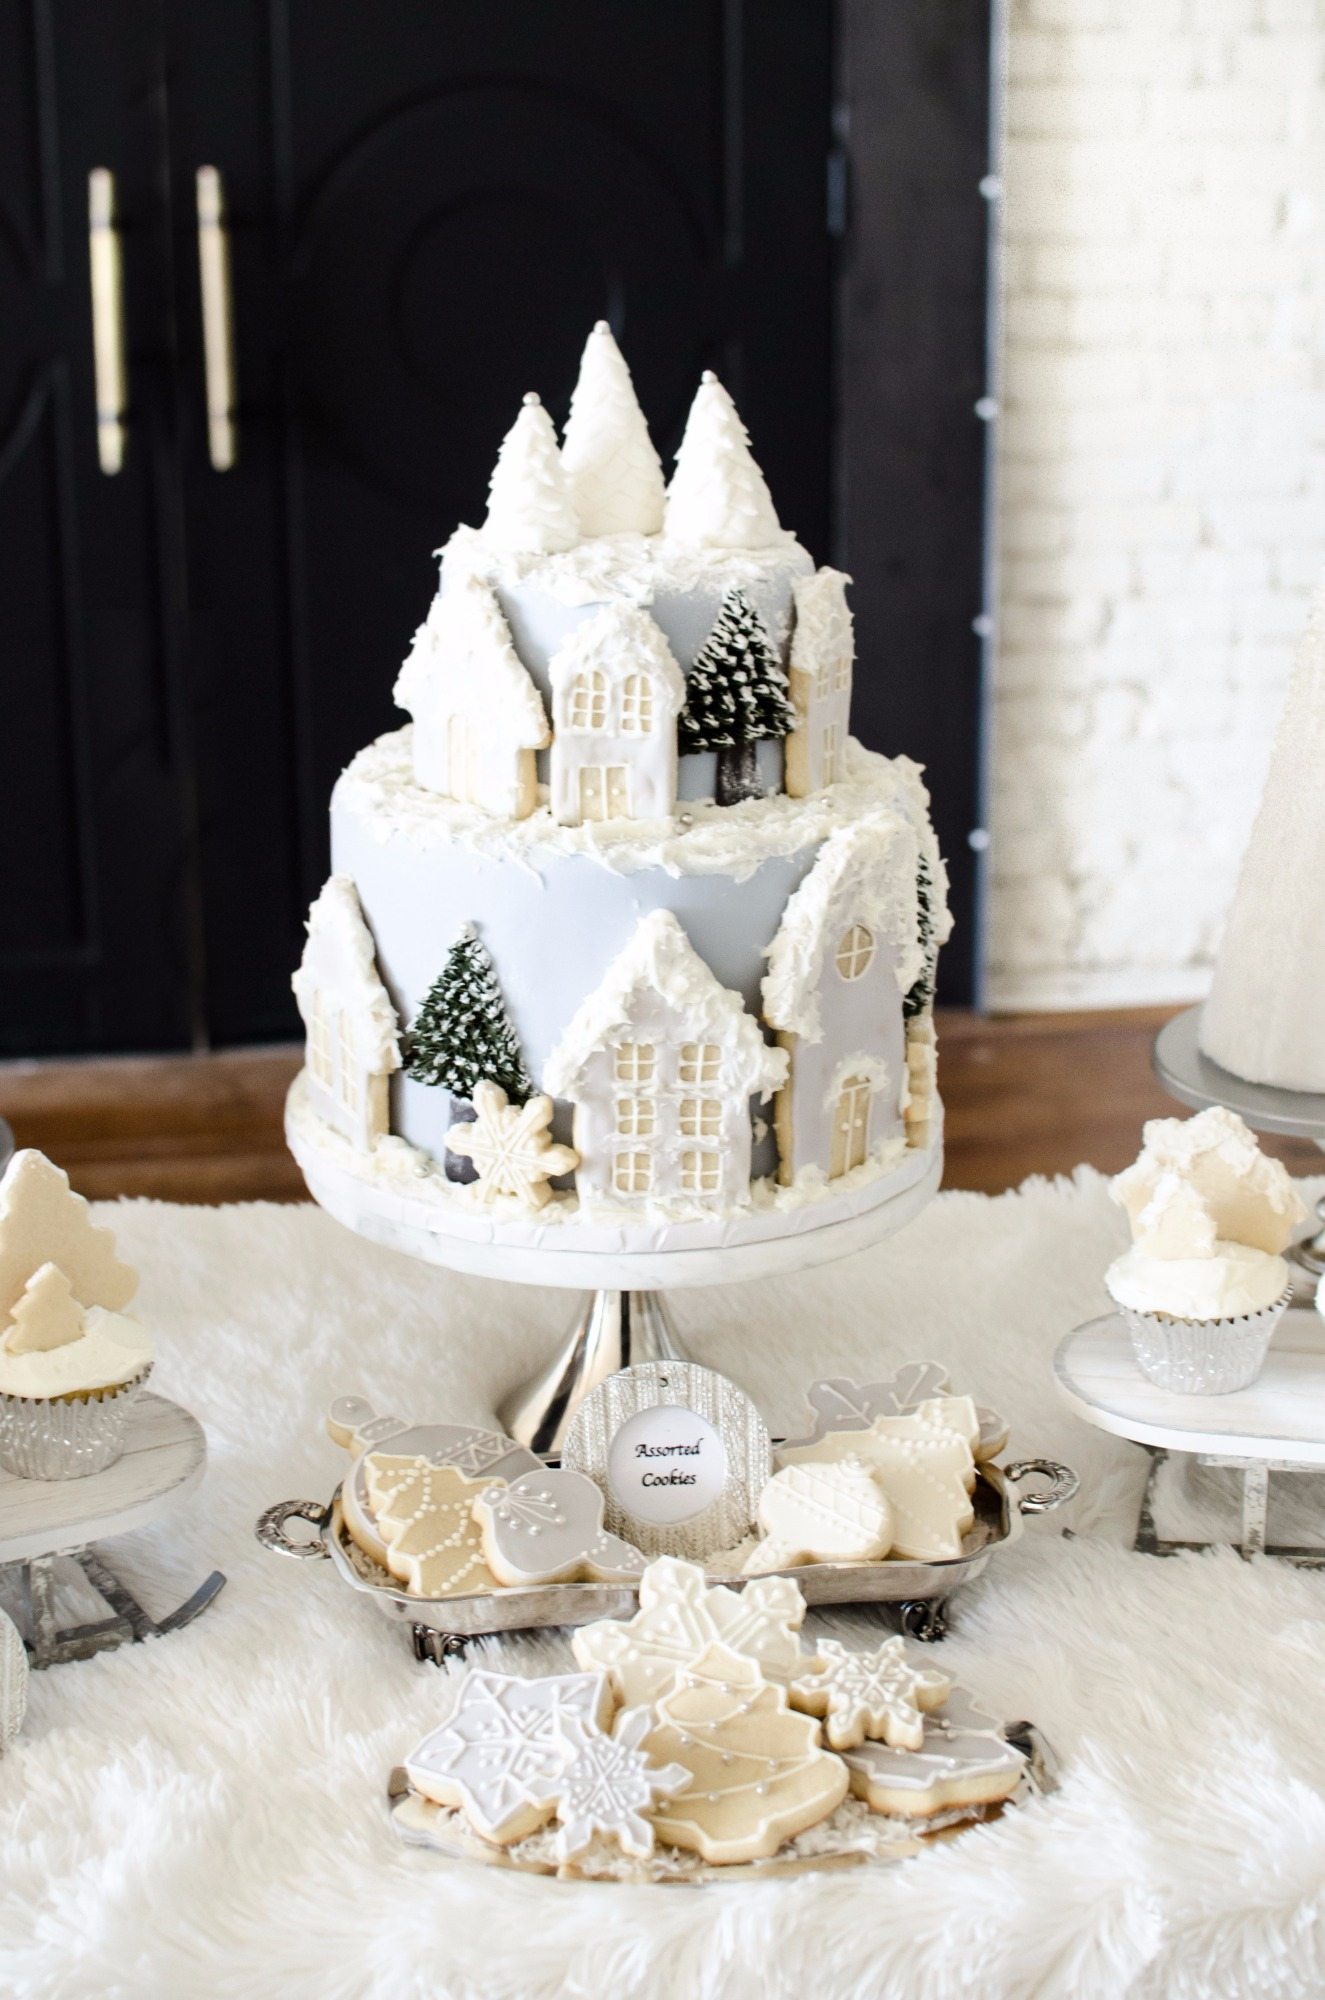 Cake and Cookies from Winter Wonderland Shower Styled by Mint Event Design | Black Twine